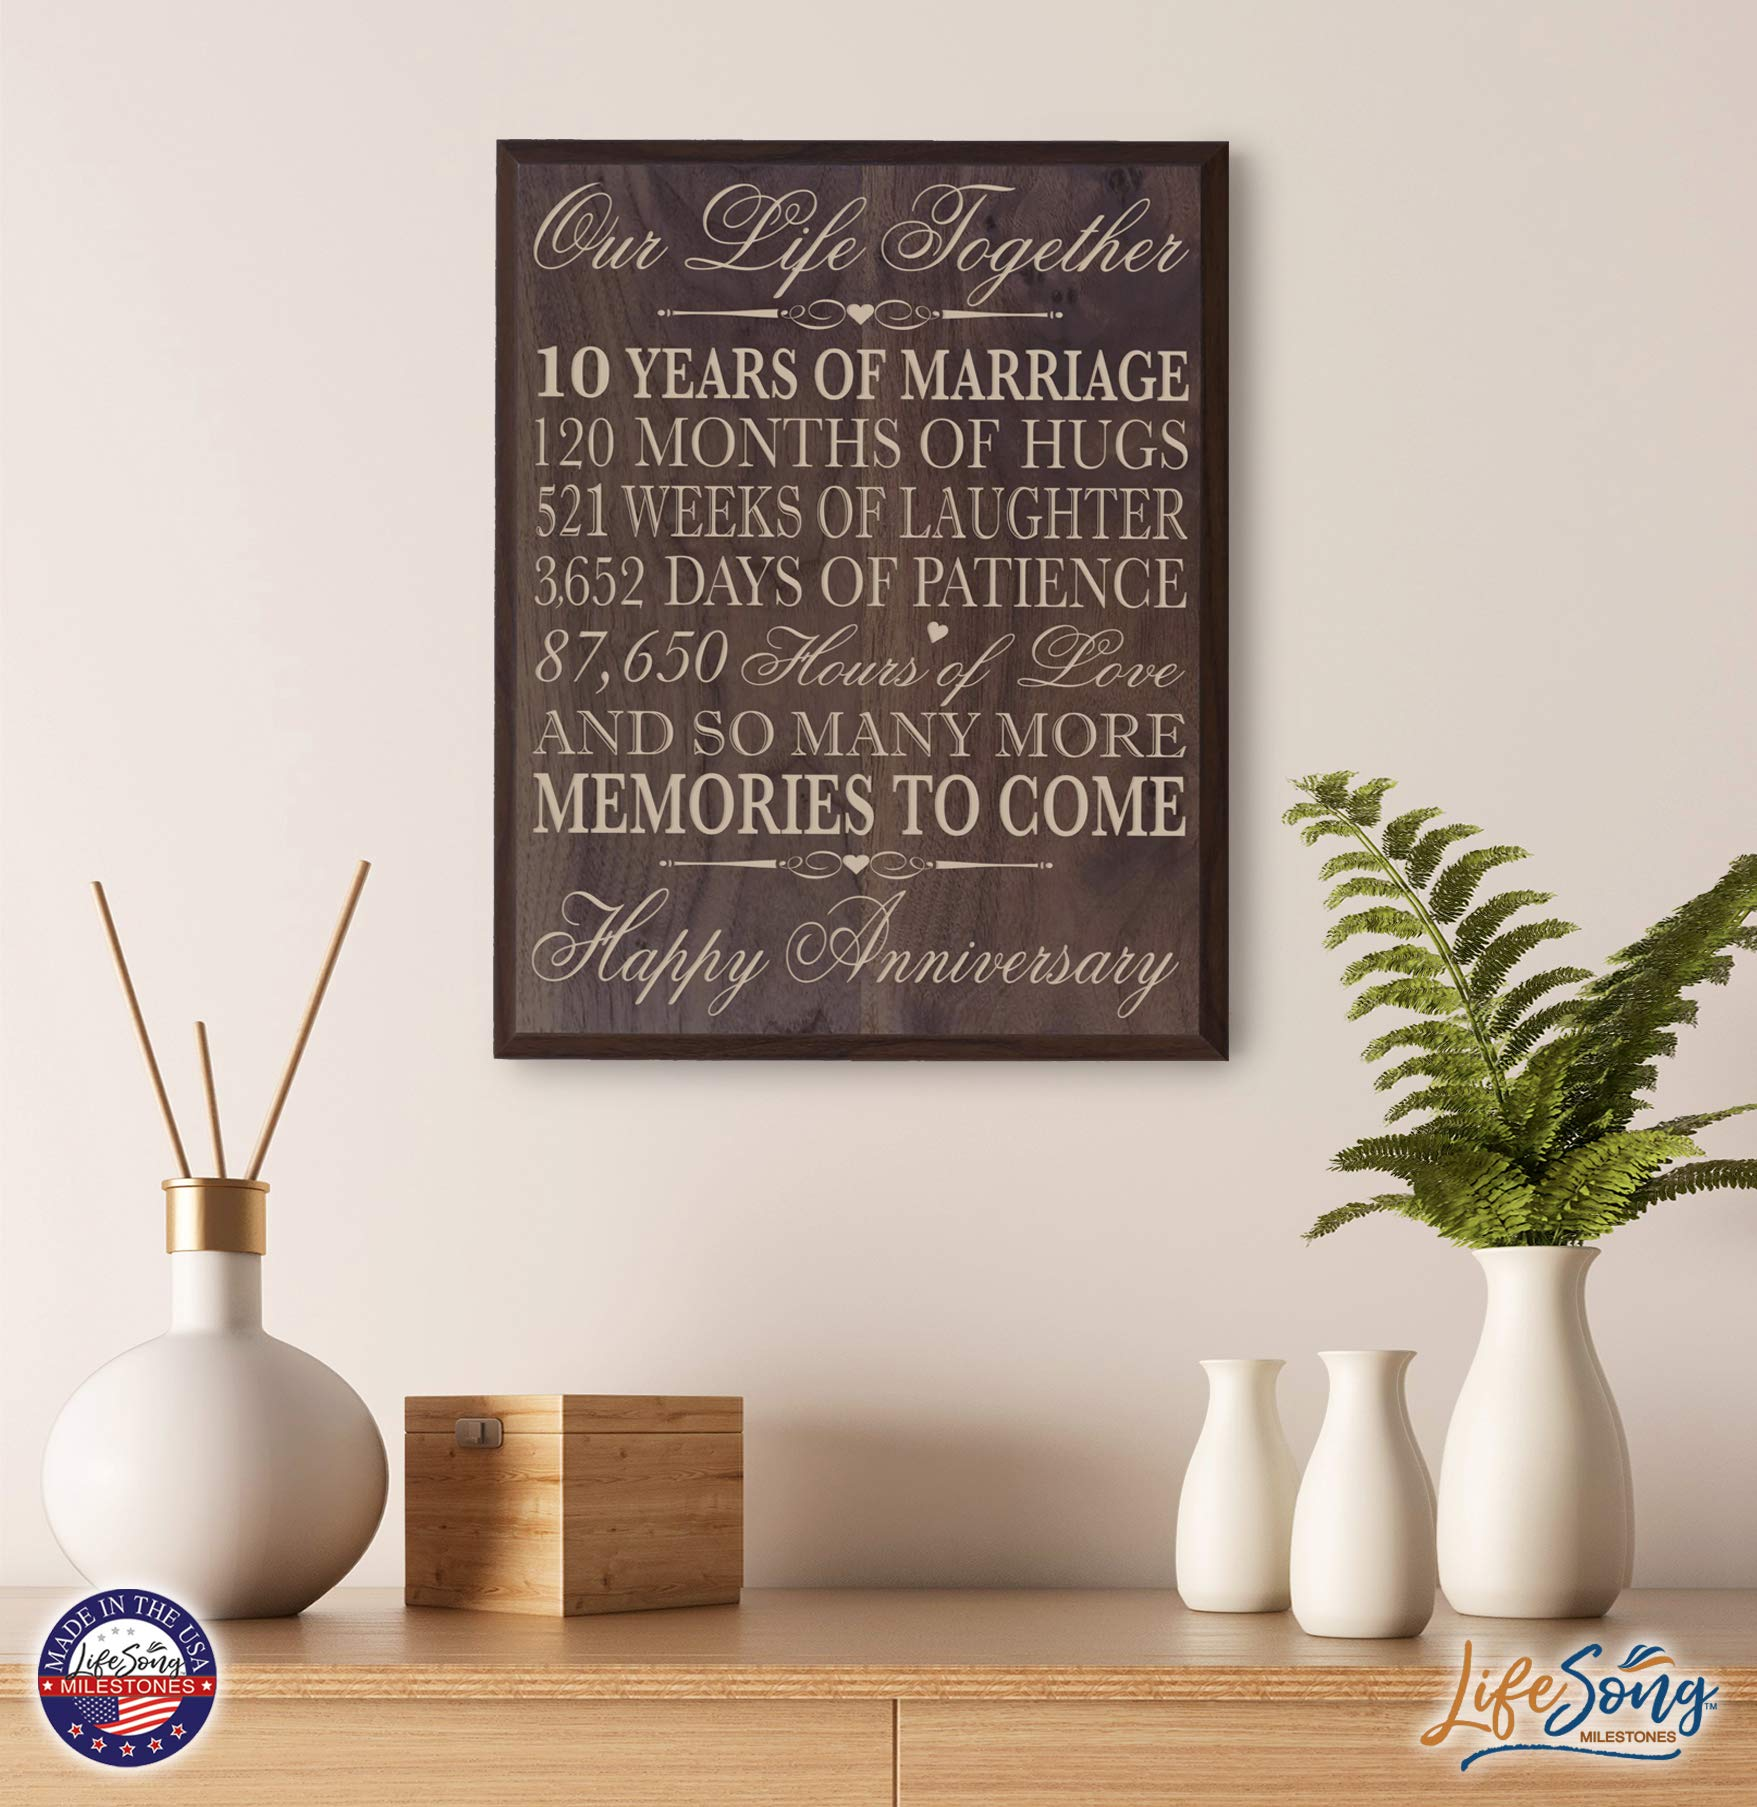 LifeSong Milestones 10th Wedding Anniversary Wall Plaque Gifts for Couple, 10th for Her,10th Wedding for Him 10.75'' W X 13'' H Wall Plaque (Grand Walnut) by LifeSong Milestones (Image #4)